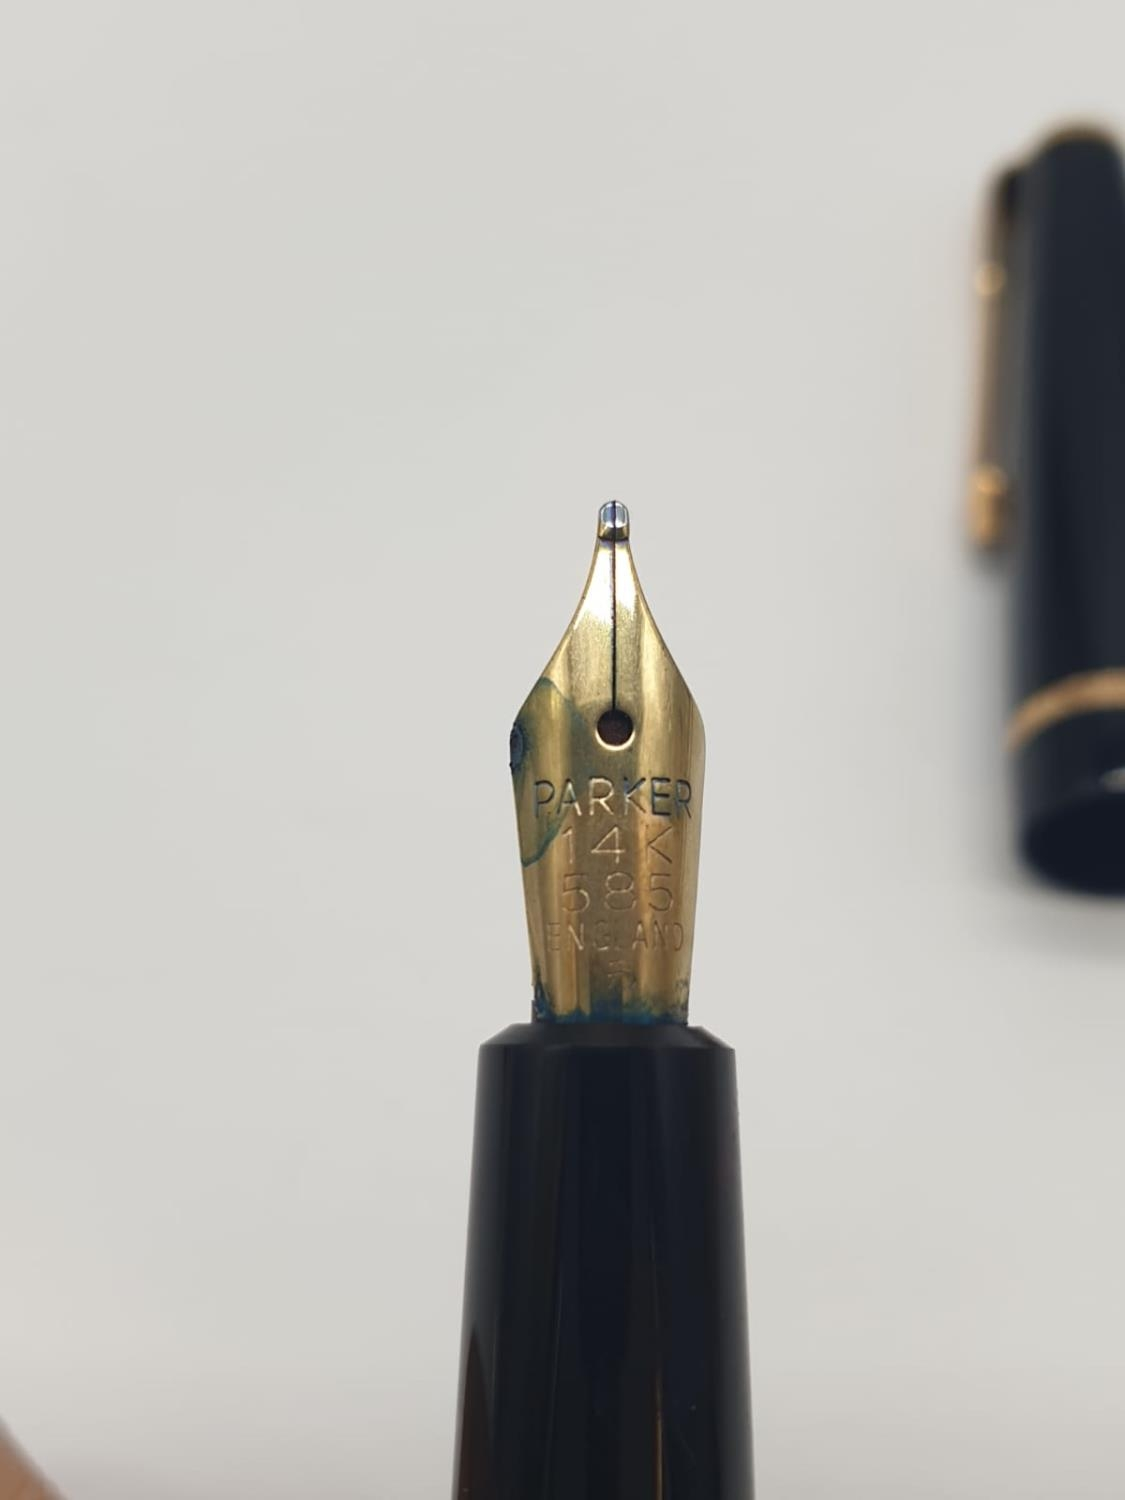 Vintage Parker FOUNTAIN PEN with 14ct Gold Nib. - Image 5 of 7